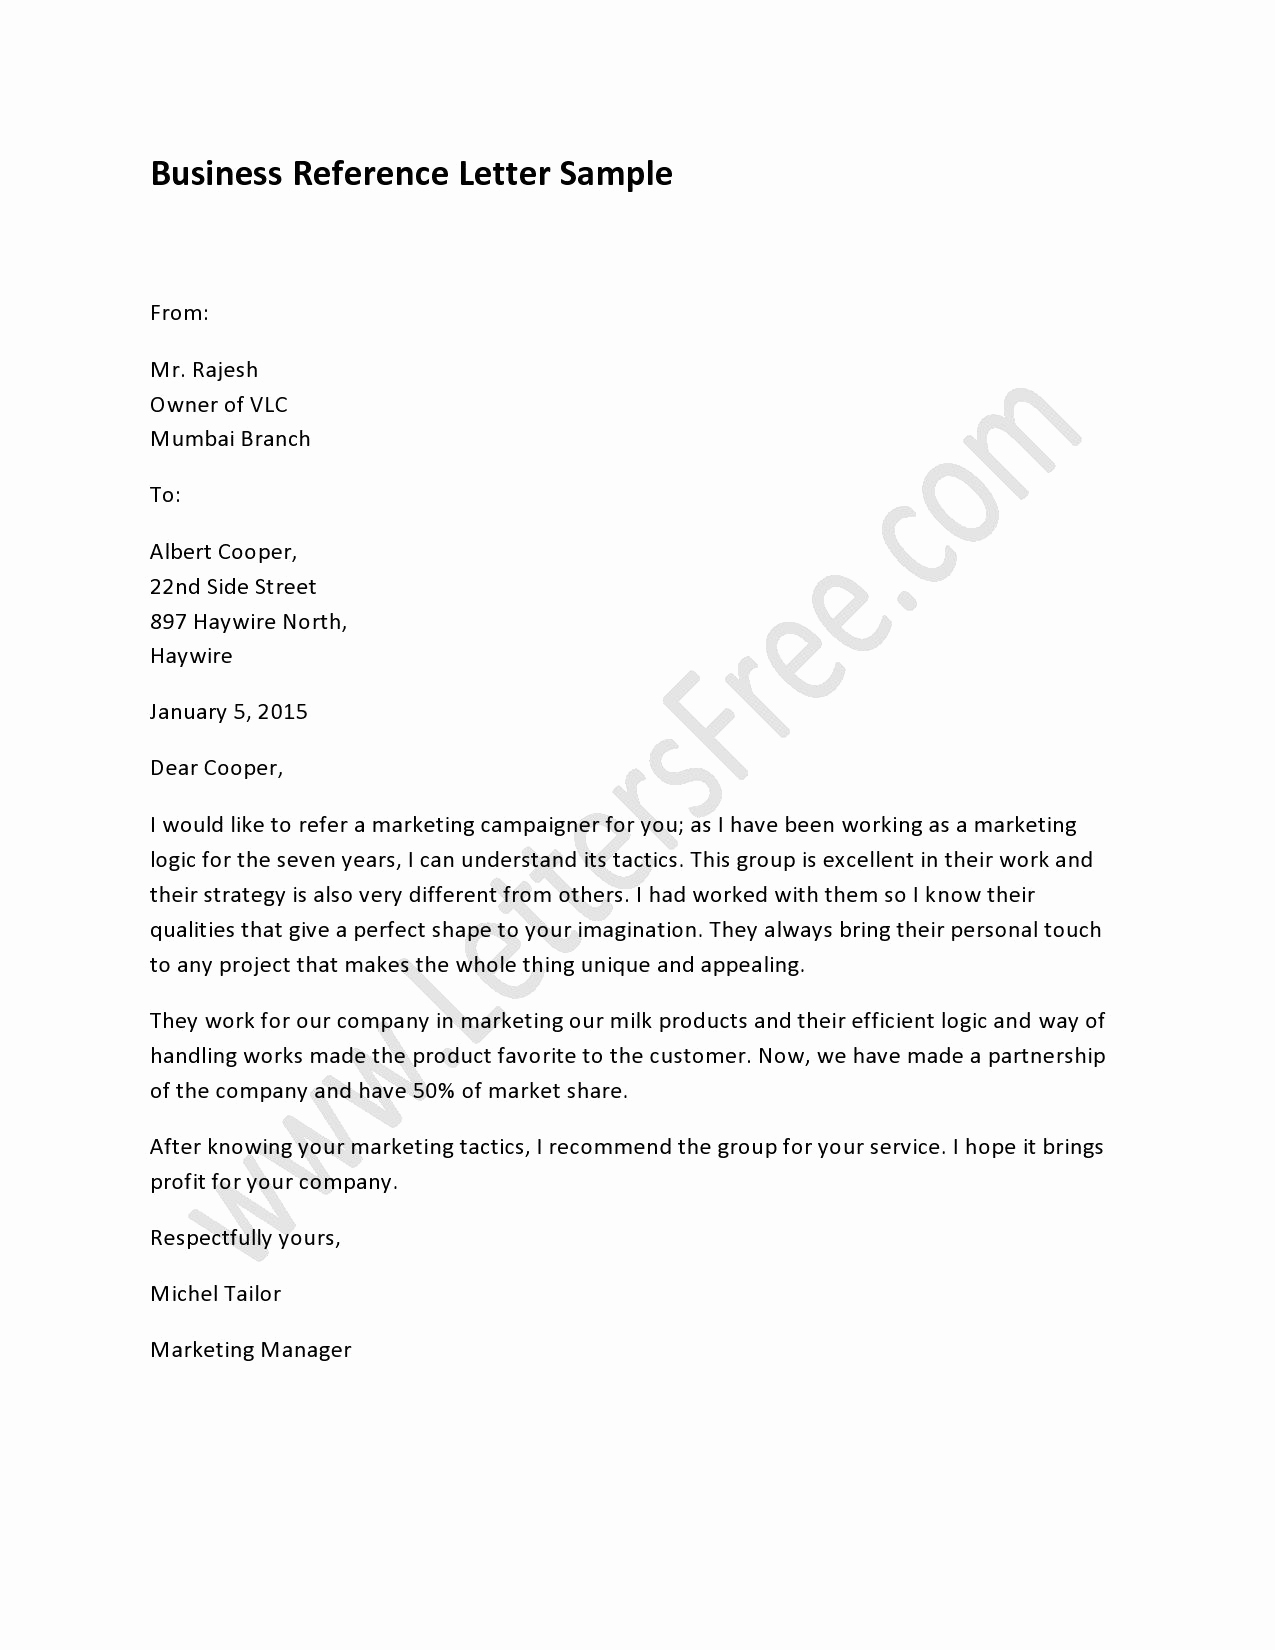 Sample Of Bussiness Letters Awesome Sample Business Reference Letter How to Write A